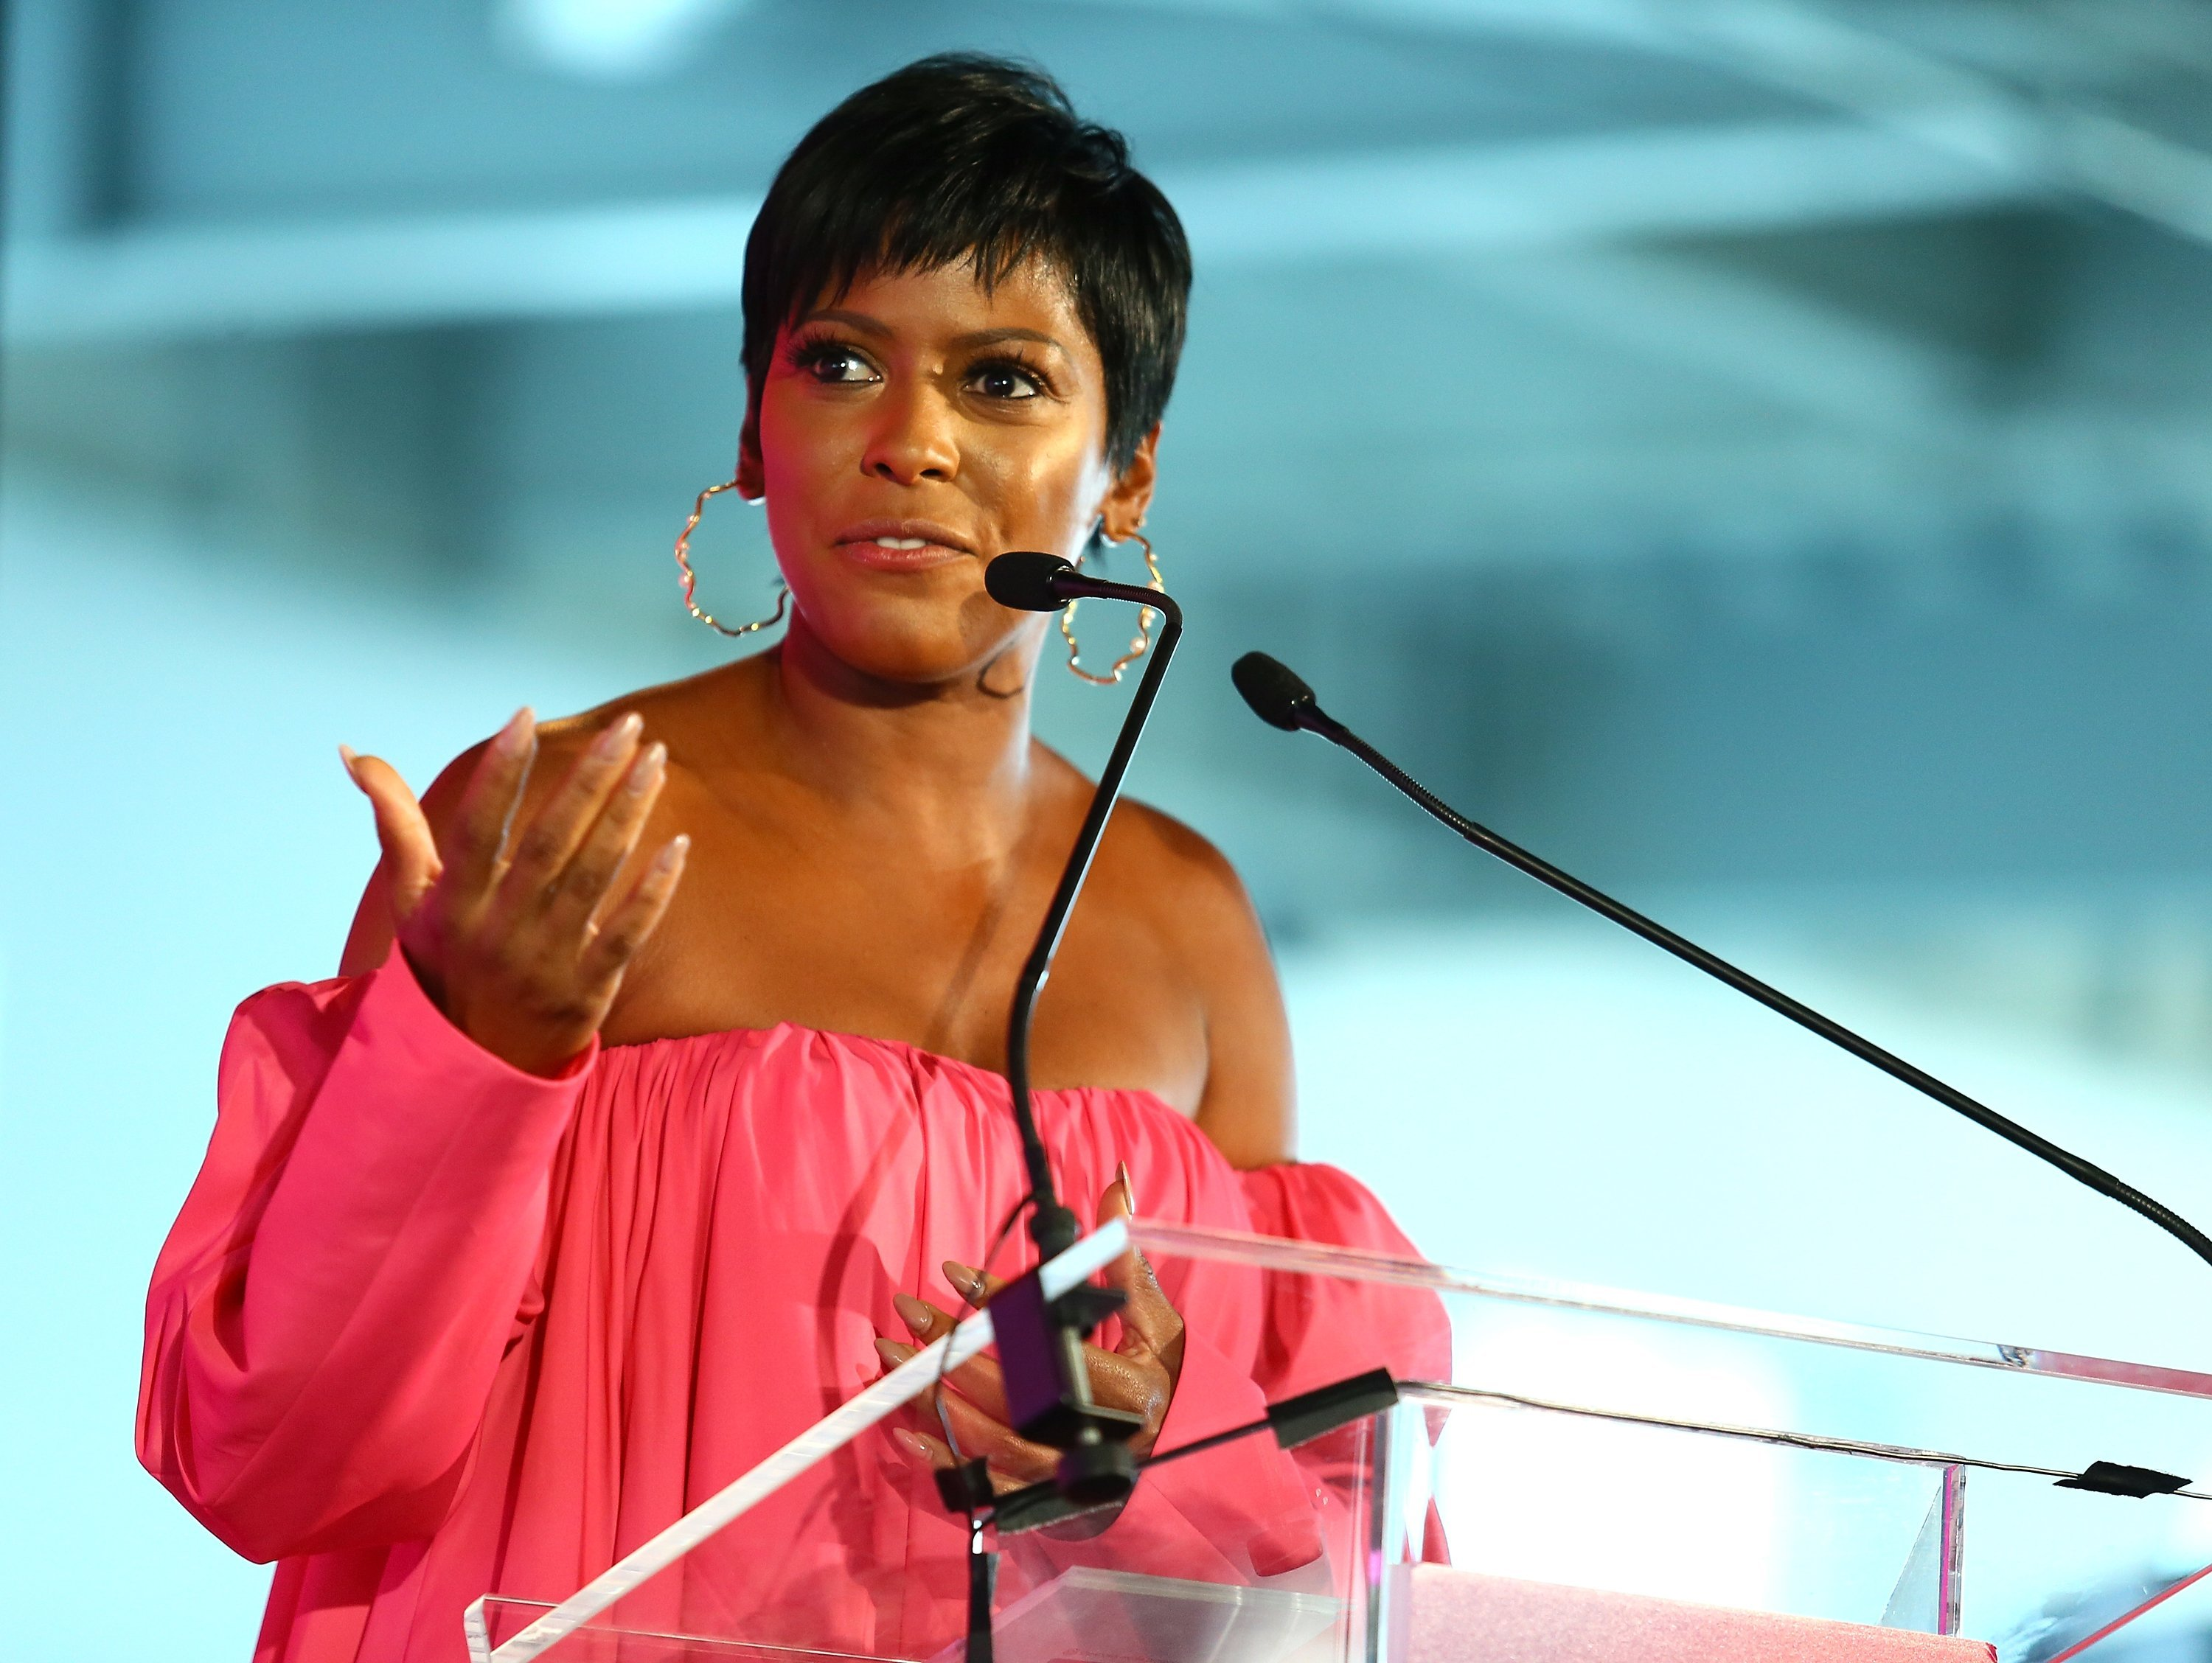 Tamron Hall speaks at the #BlogHer 18 Creators Summit in New York City on August 9, 2018 | Photo: Getty Images